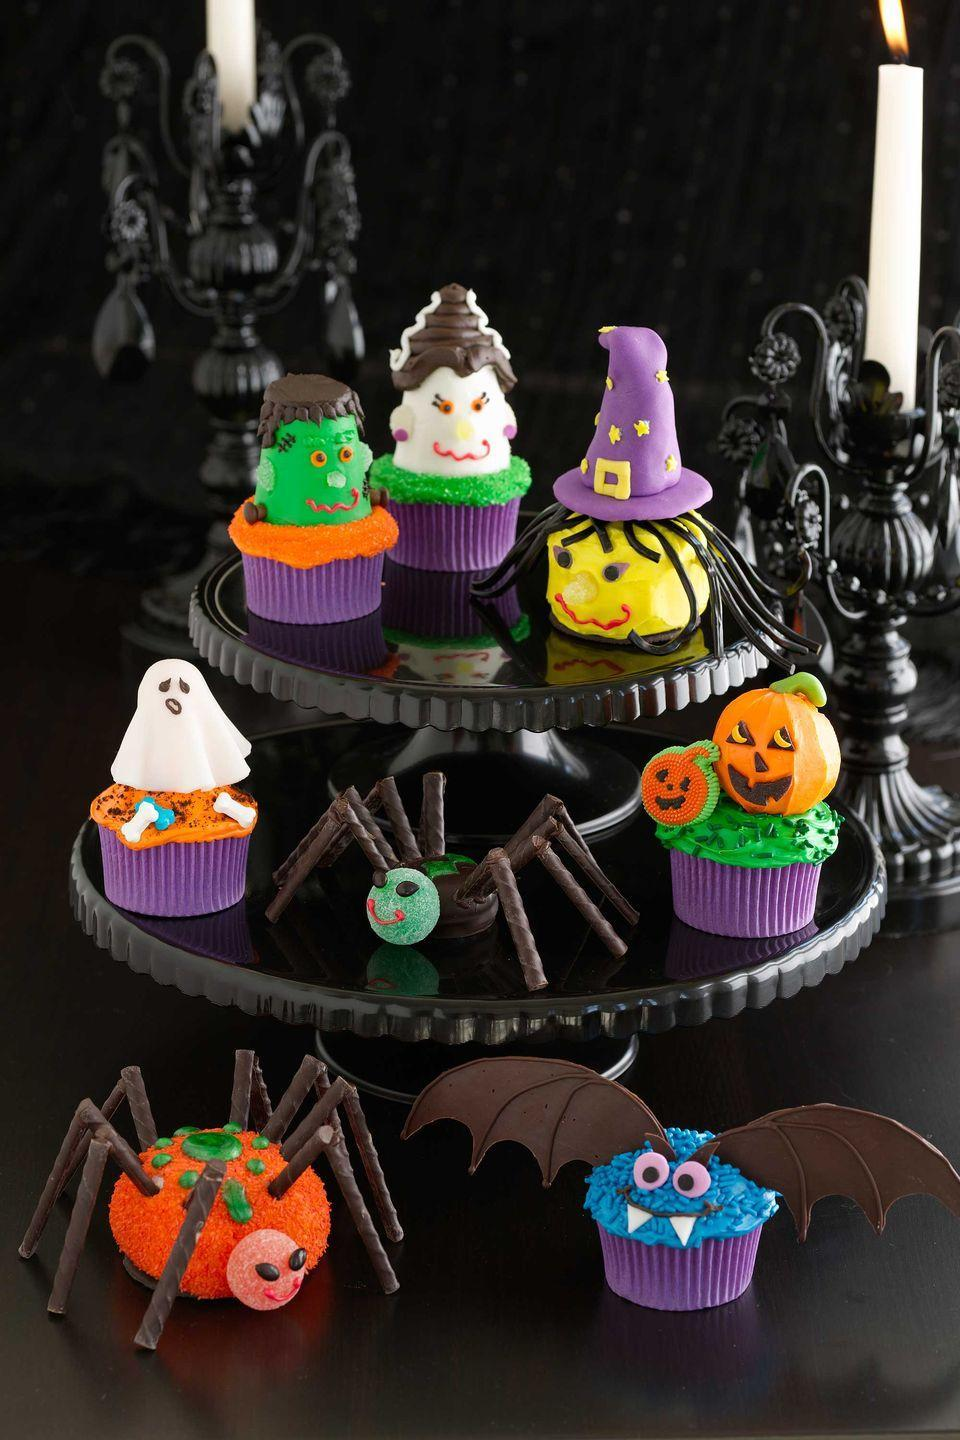 """<p>You'll never know if this witch is nice or evil because you'll be too busy enjoying her neon fondant hat, licorice hair, confetti pupils, and gumdrop nose.</p><p><a href=""""https://www.womansday.com/food-recipes/food-drinks/recipes/a10933/witch-cupcakes-122193/"""" rel=""""nofollow noopener"""" target=""""_blank"""" data-ylk=""""slk:Get the Witch Cupcakes recipe."""" class=""""link rapid-noclick-resp""""><em>Get the Witch Cupcakes recipe.</em></a></p>"""